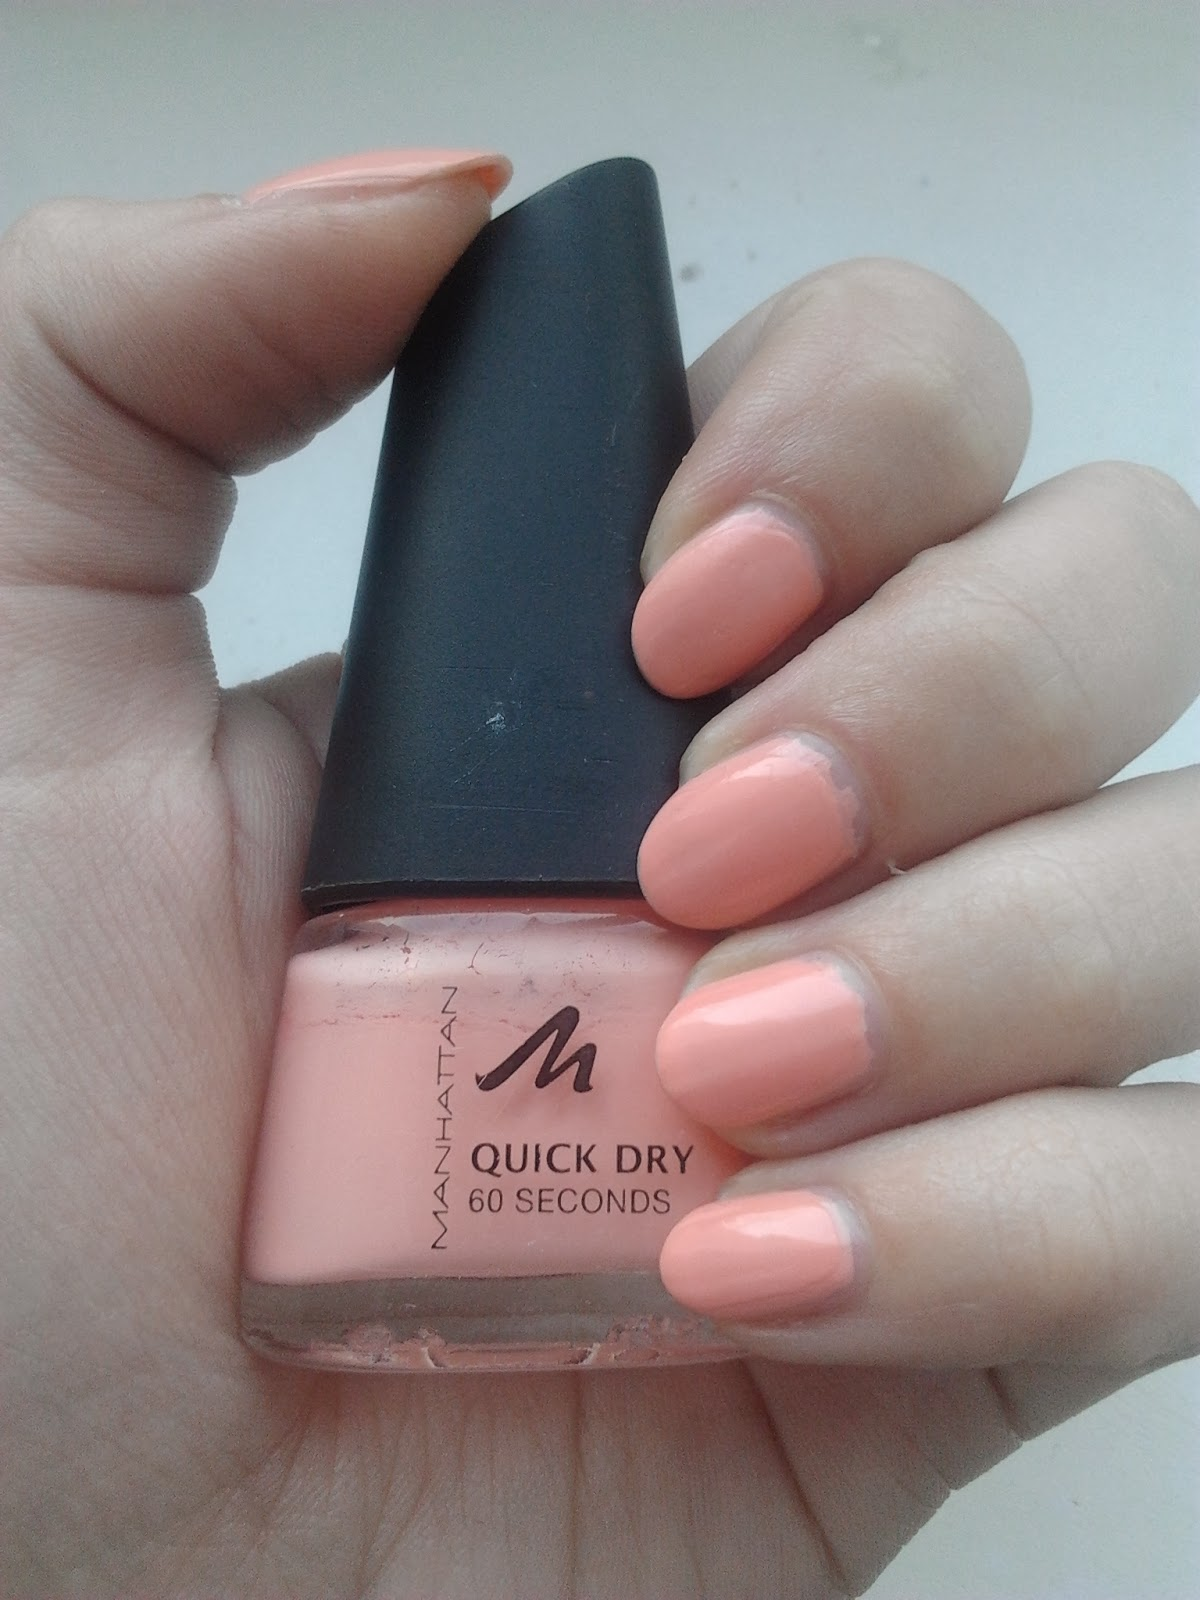 Manhattan Quick Dry 60 Seconds Nail Polish 11b - Creative Touch